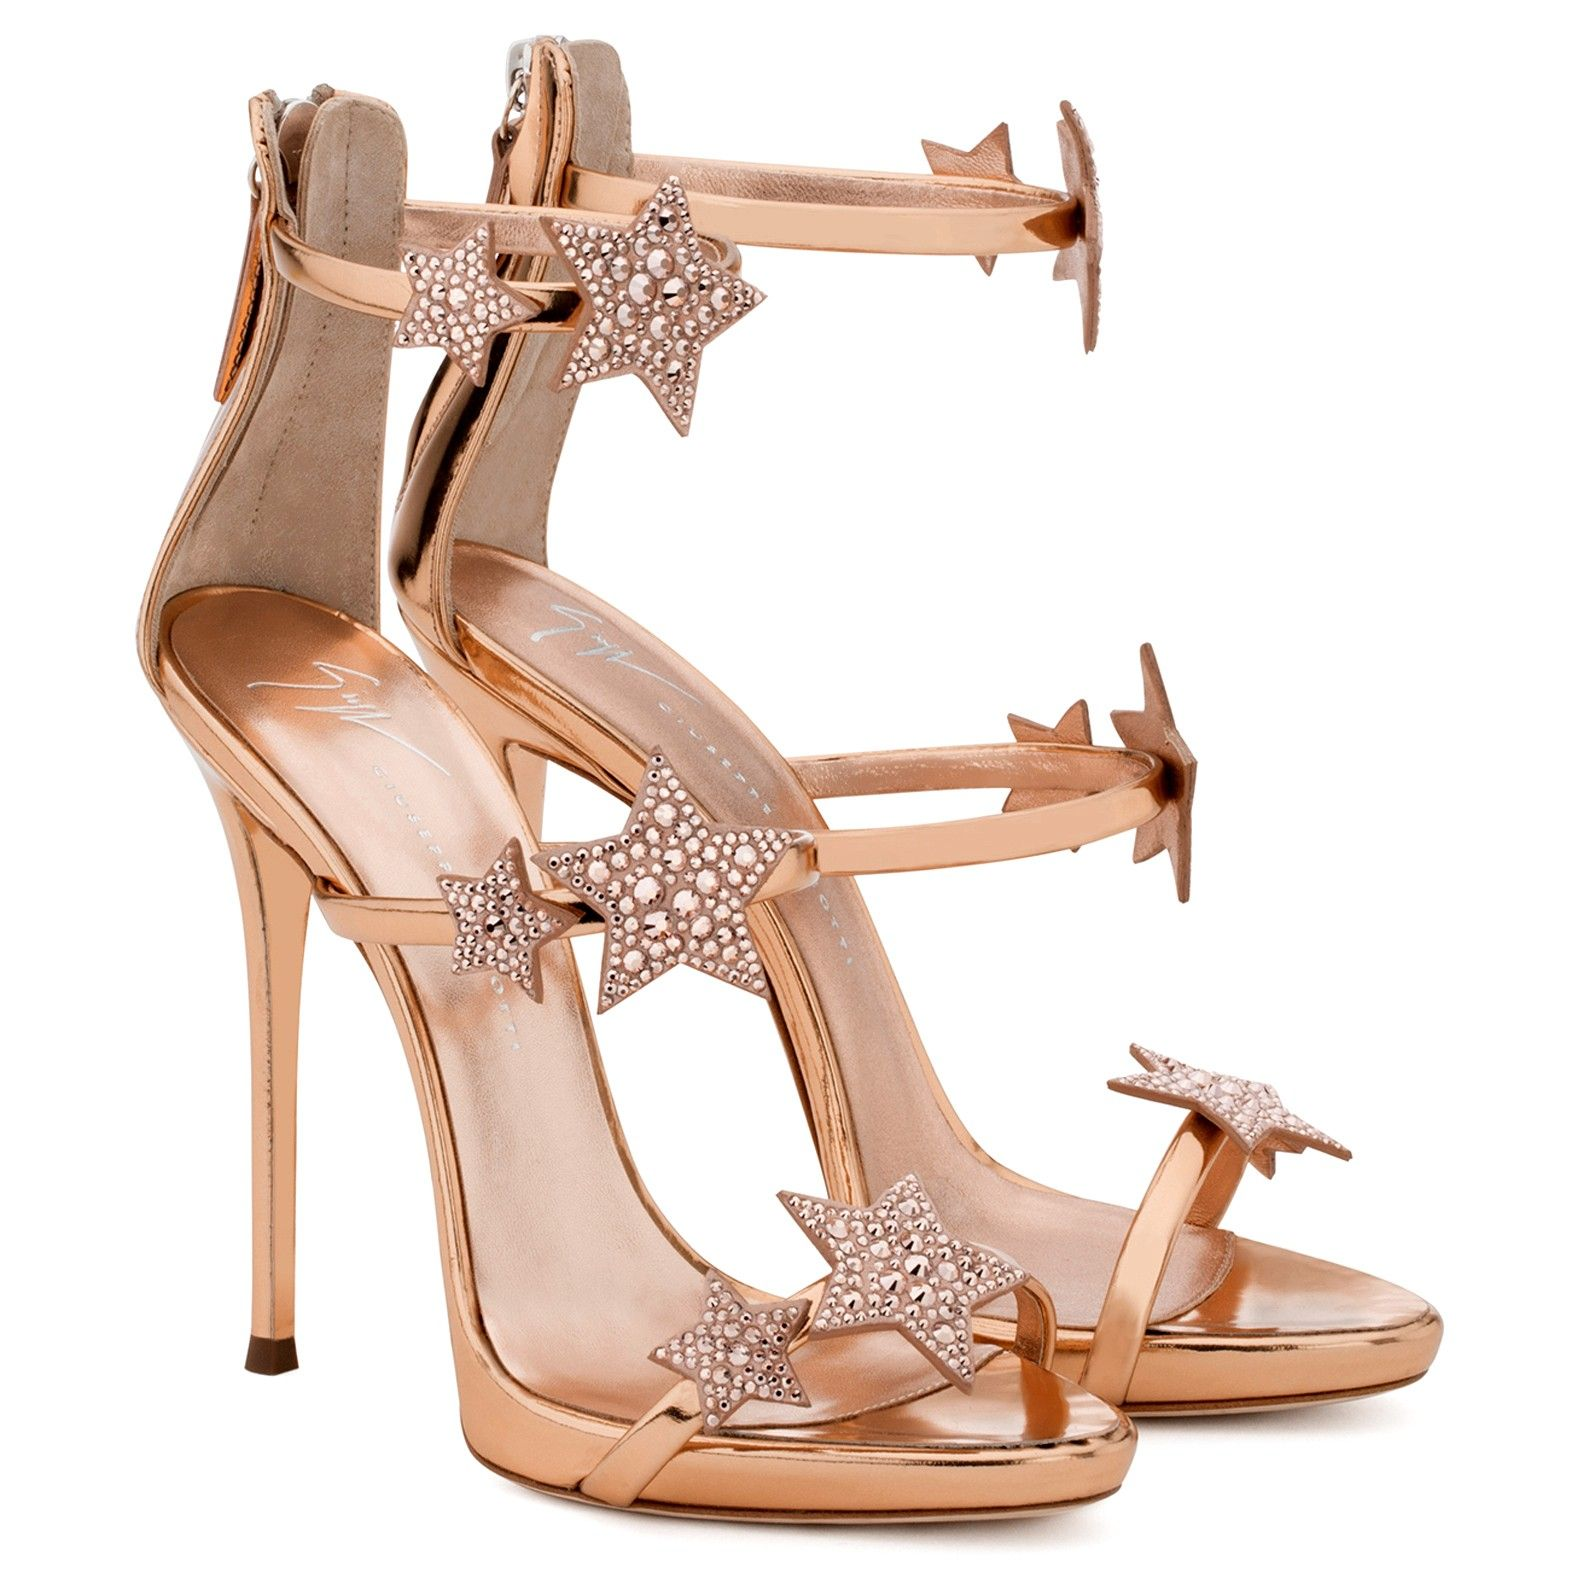 Harmony Star - Sandals - Gold  7a5279c20d6